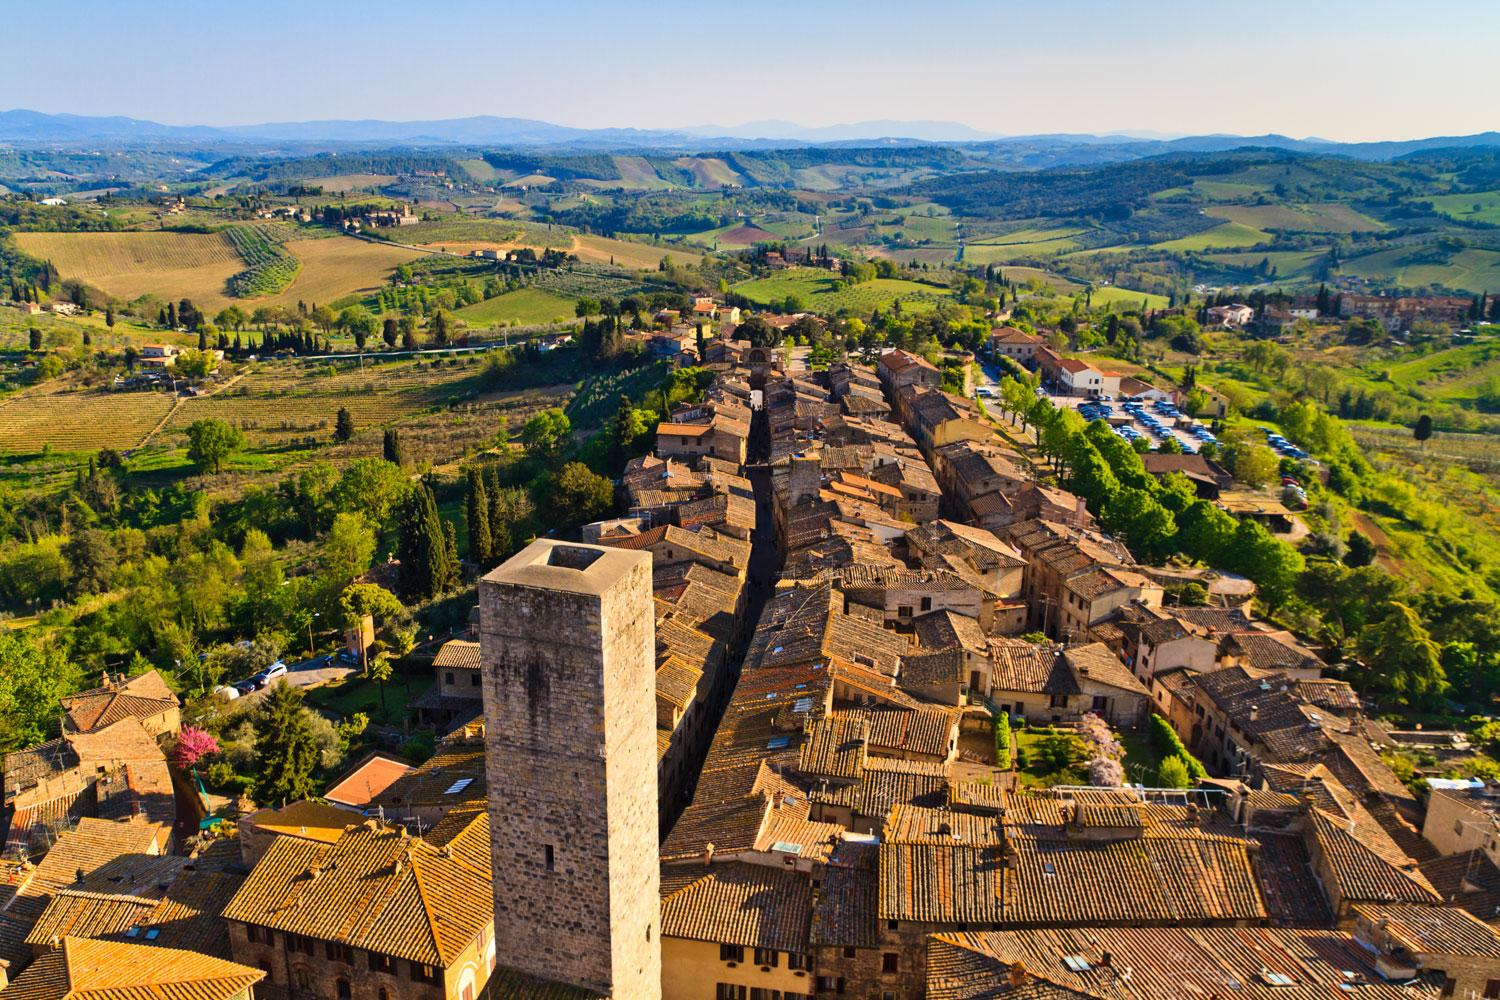 Self-guided walking holiday in Tuscany